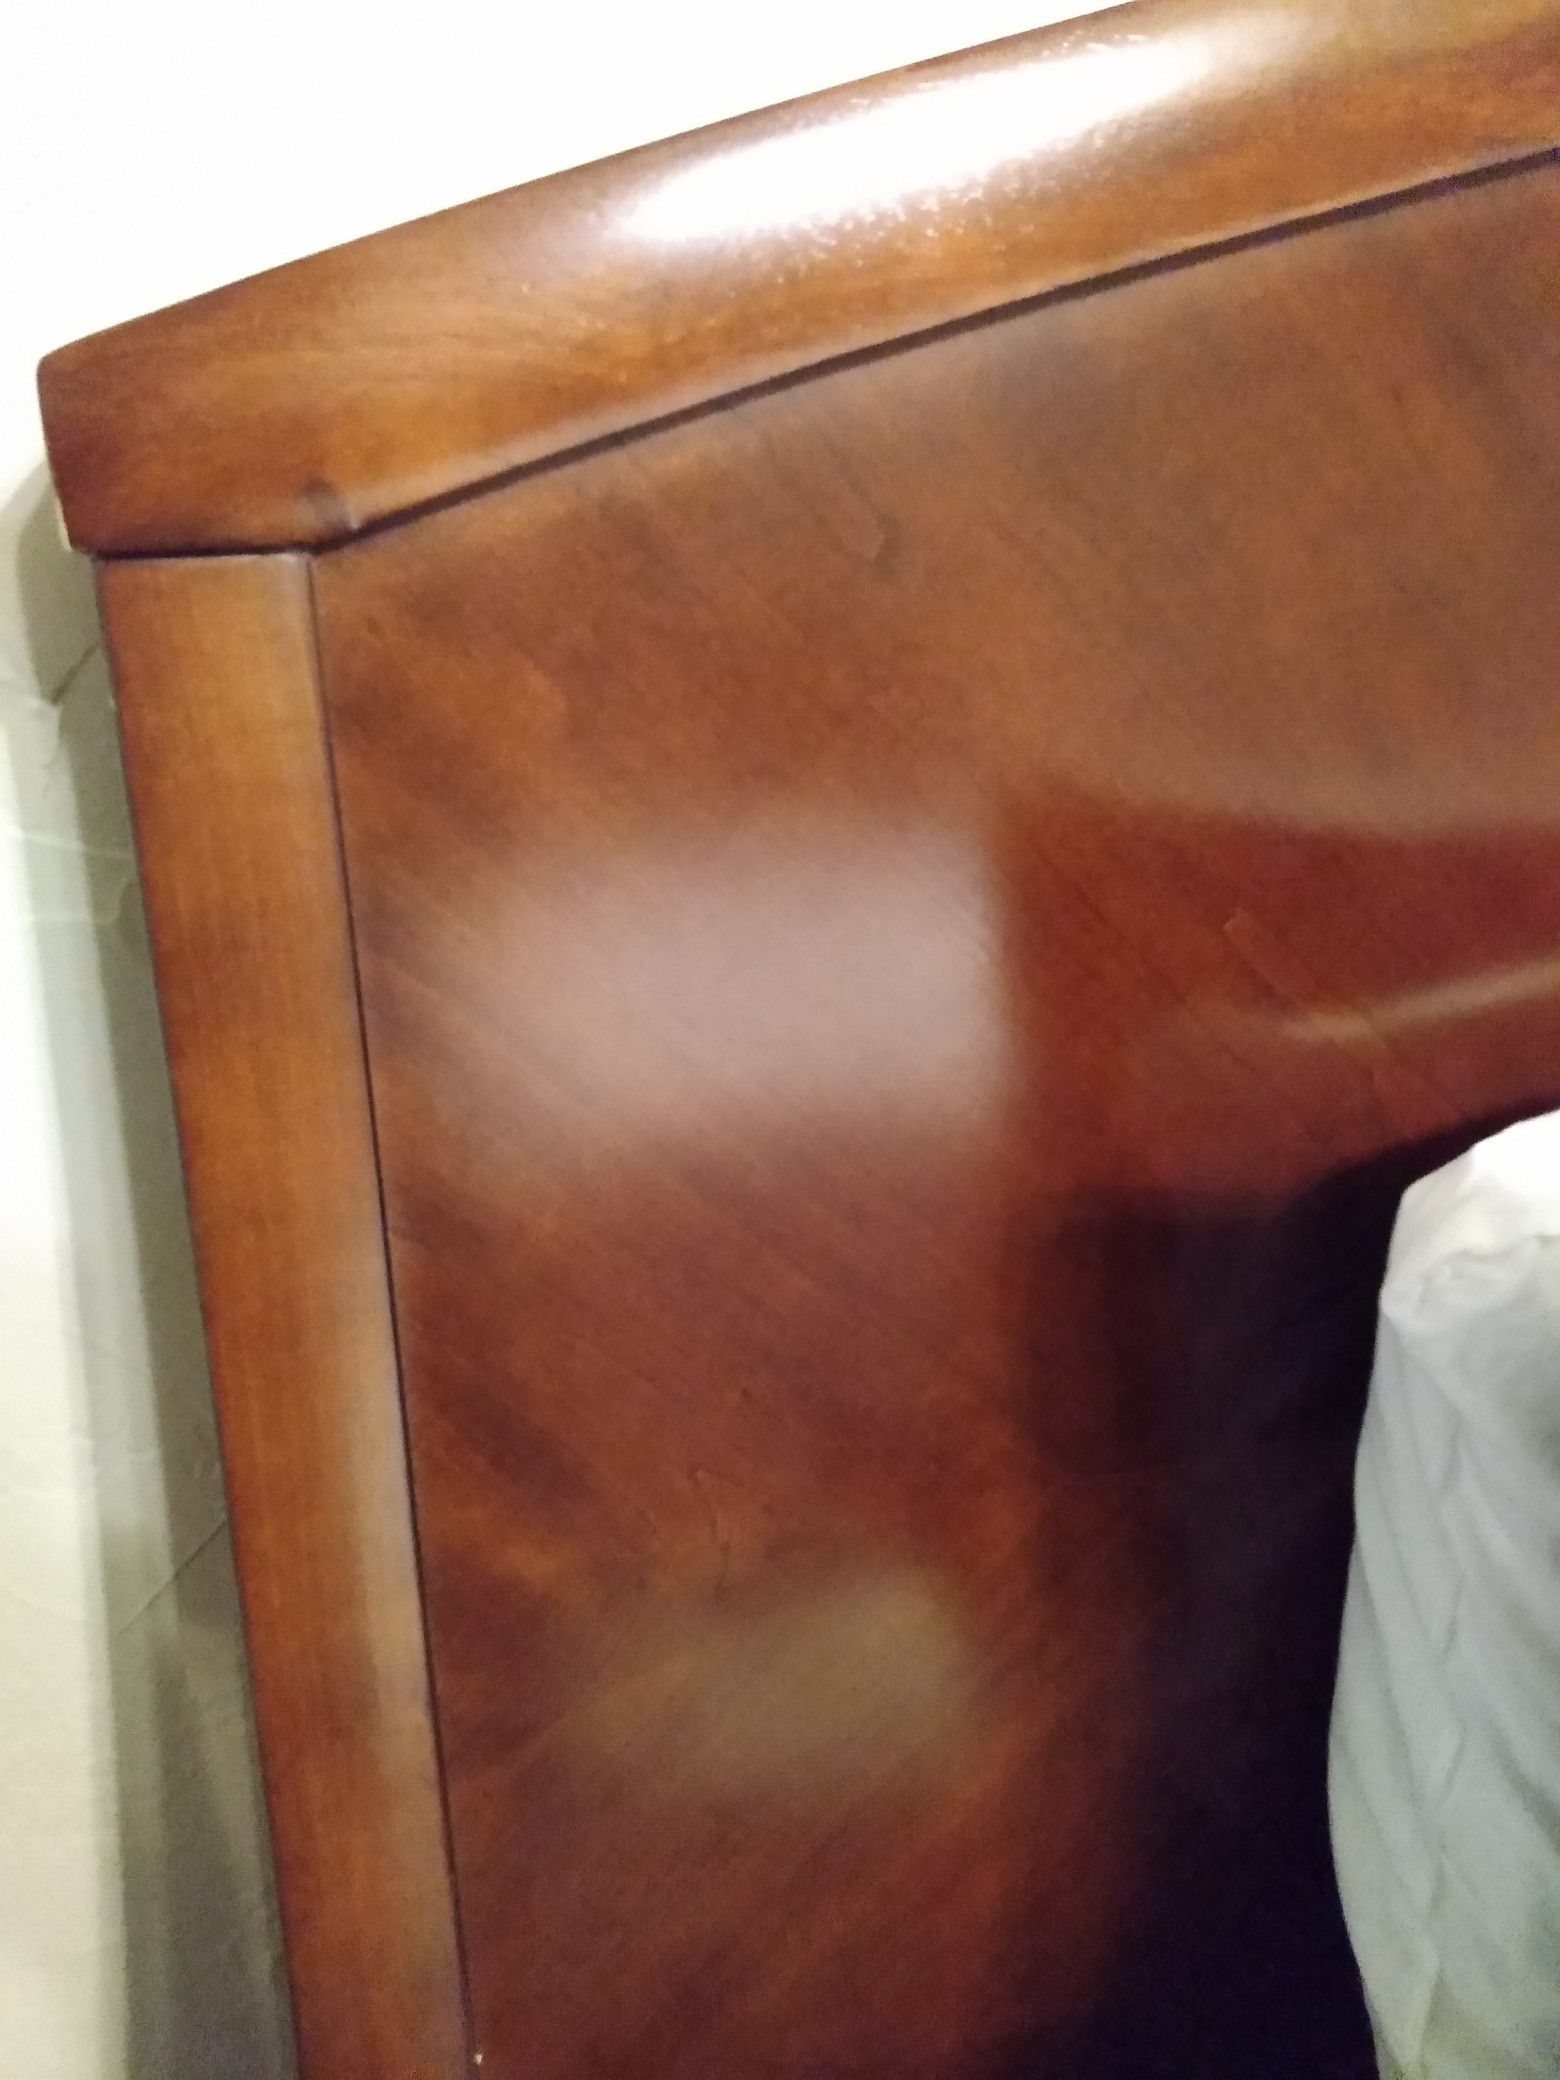 King-size bedroom suit includes matress box springs